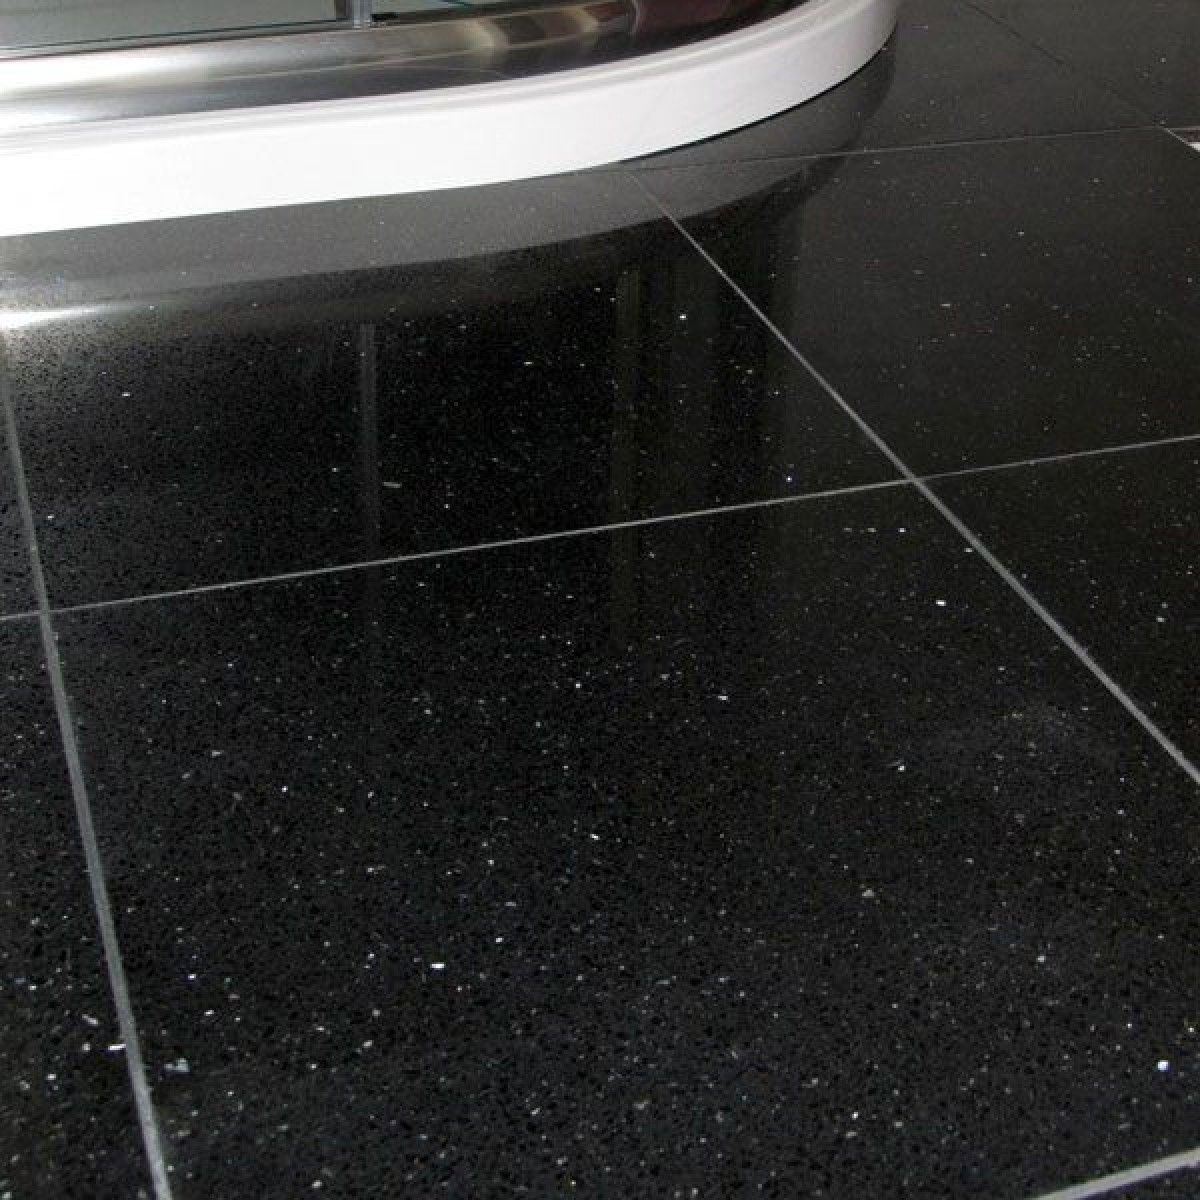 Quartz Star Stone Black 300mm X 300mm Glitter Floor White Sparkle Tiles White Vinyl Flooring